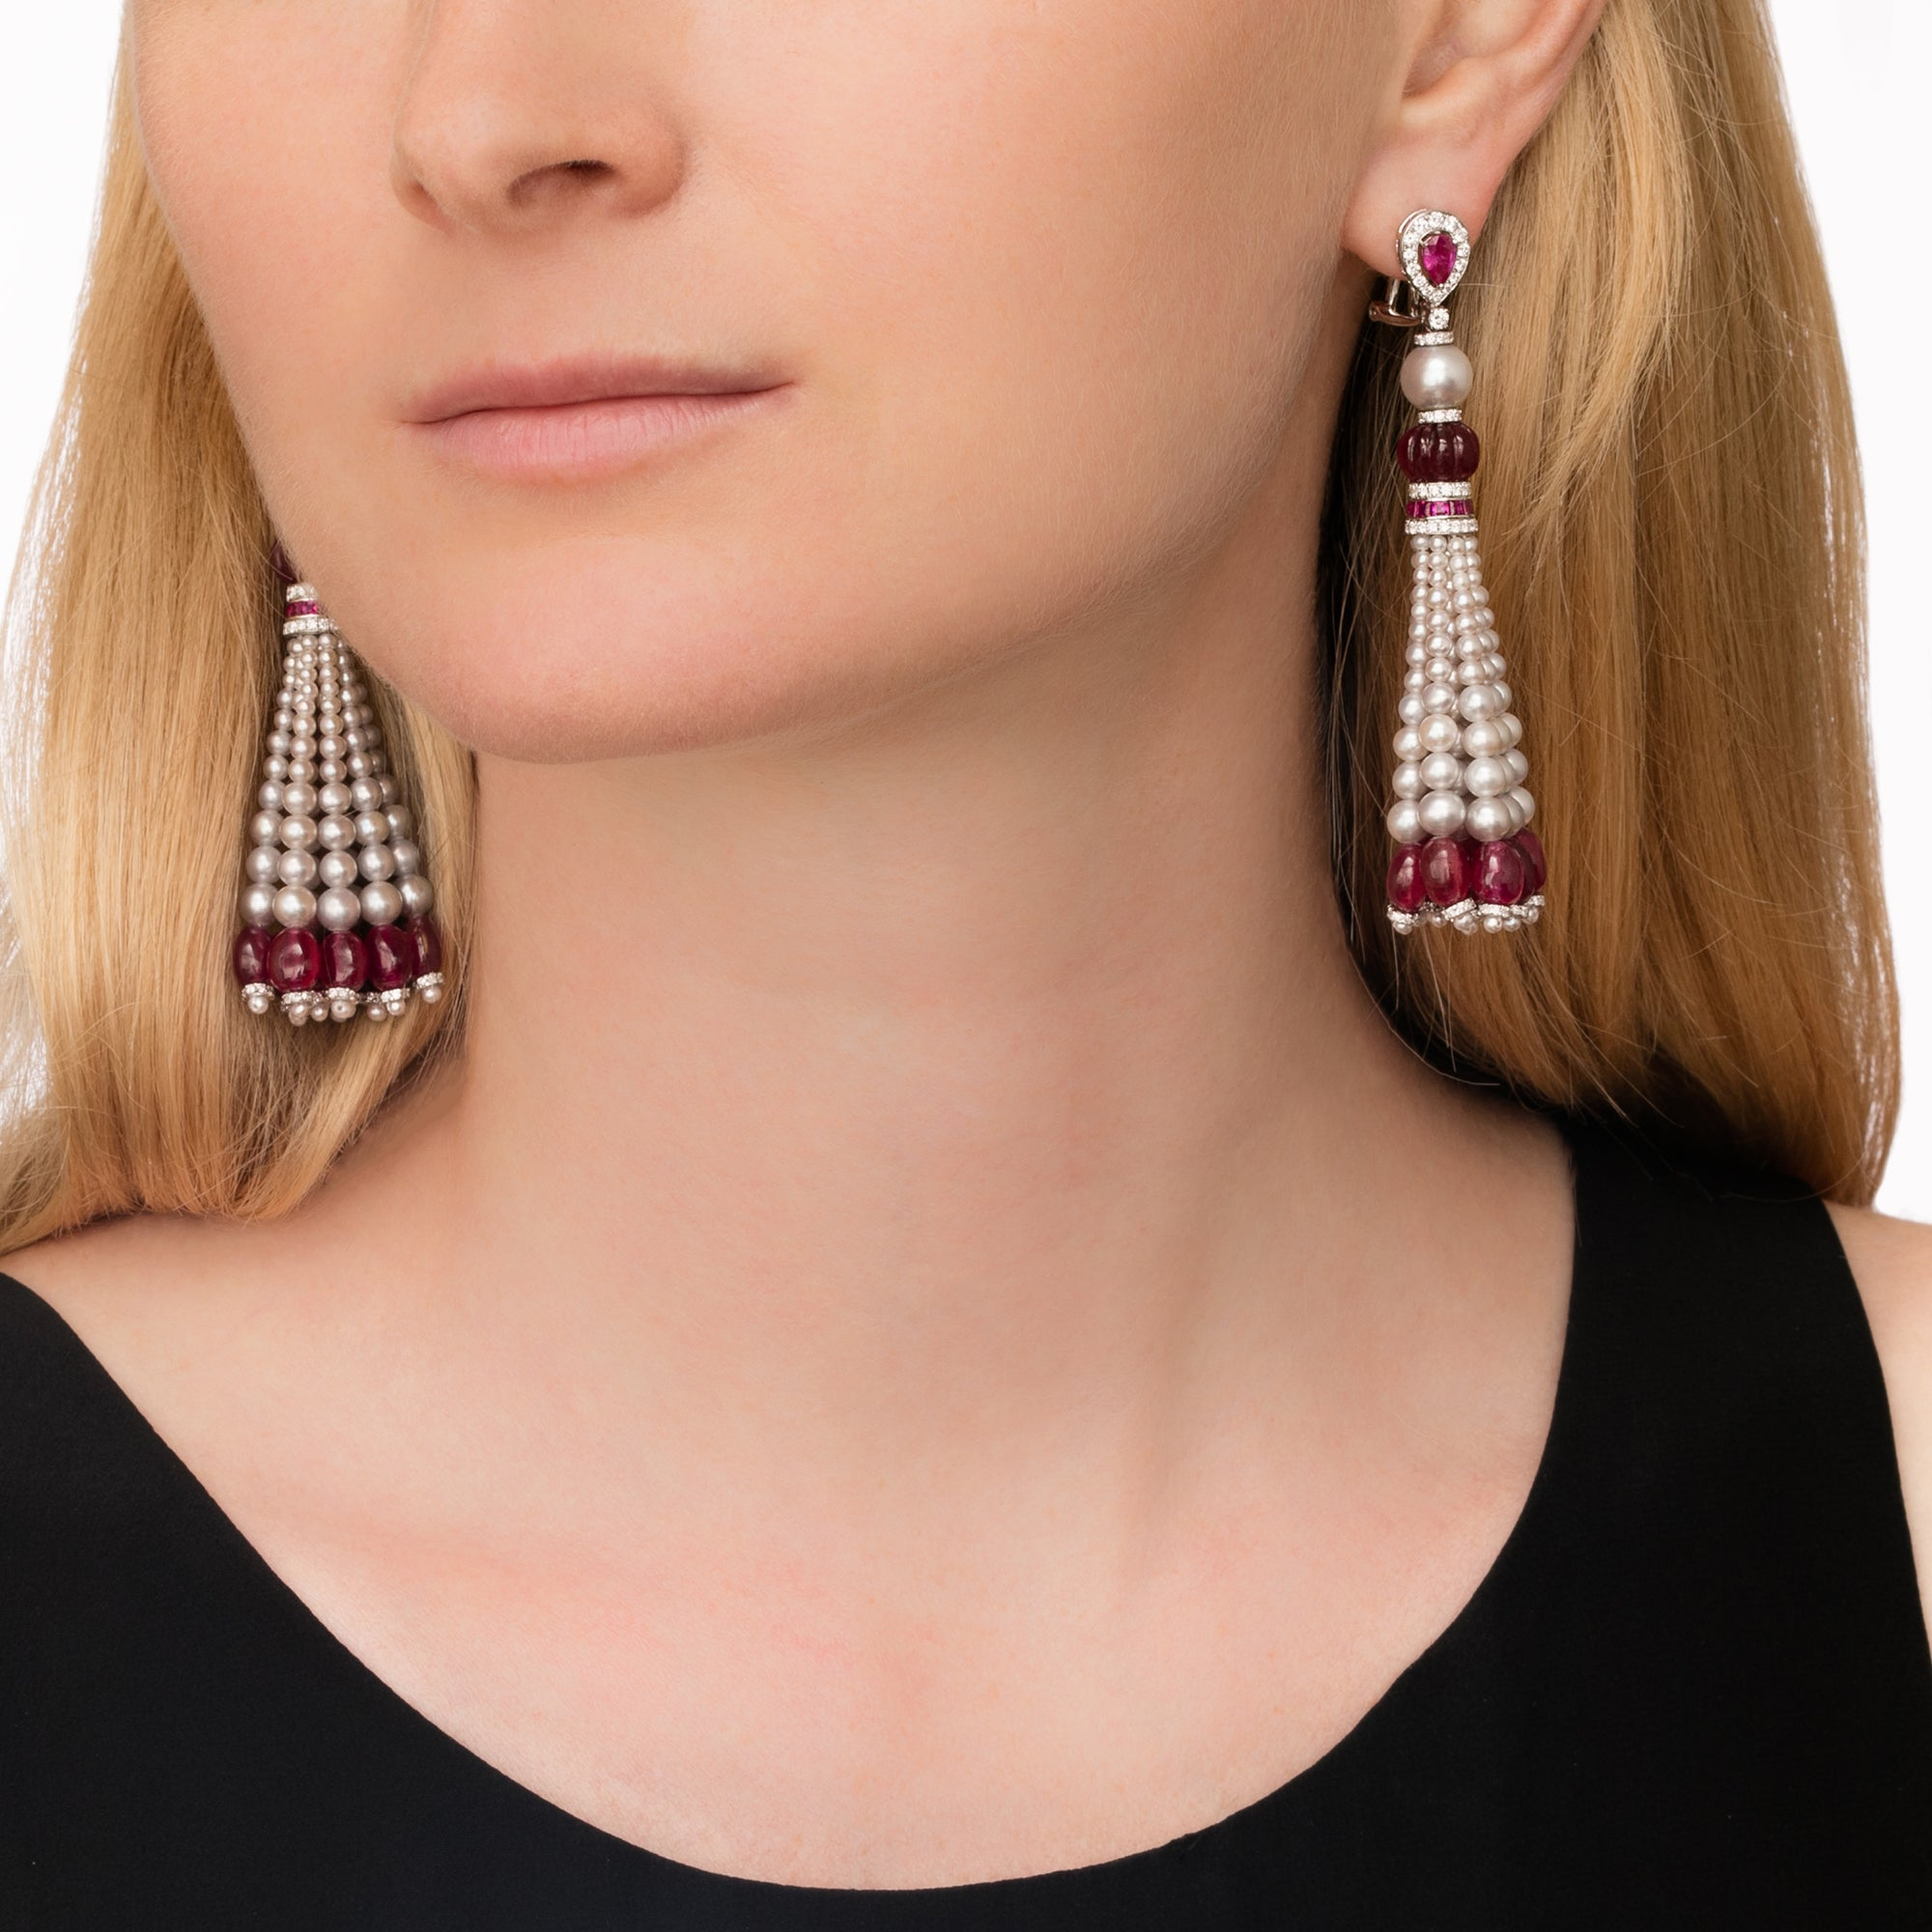 Ruby and Pearl Tassel Earrings - Legend Amrapali - Earrings | Broken English Jewelry